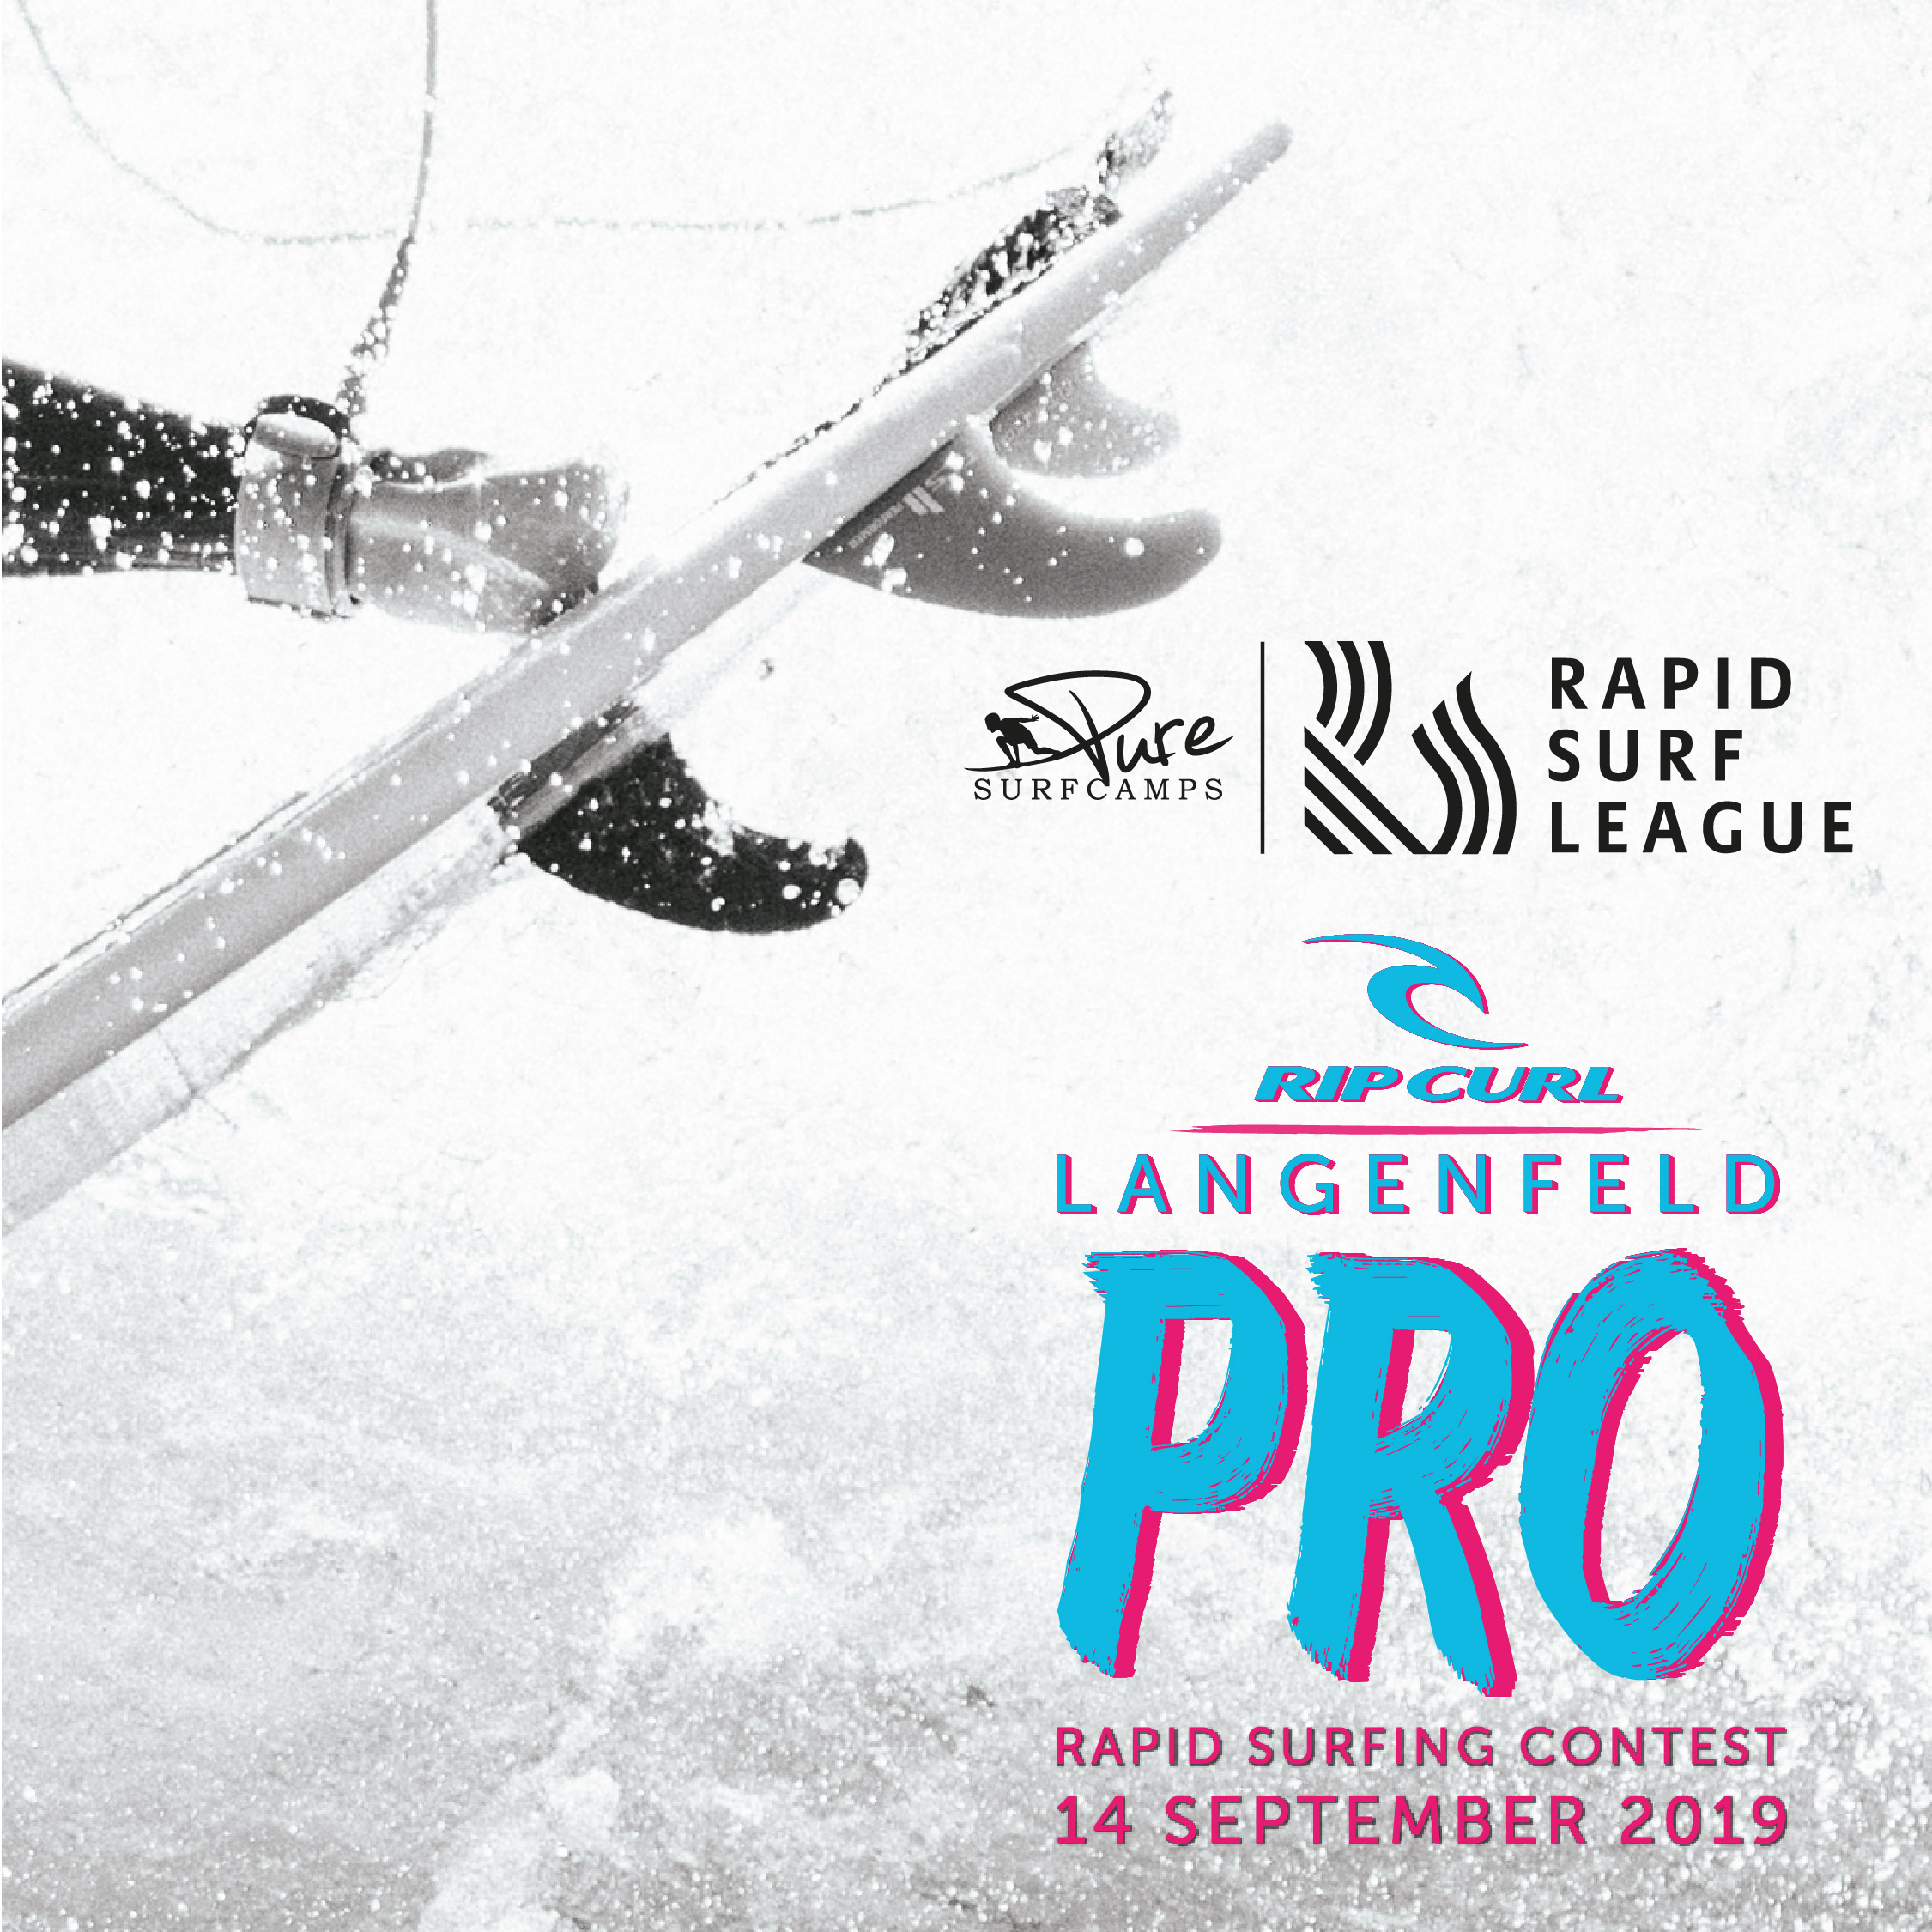 Rip Curl Langenfeld Pro - Langenfeld, September 14th 2019The first ever stationary wave on a lake is of course a must again on the 2019 calendar. Big, powerful, exciting! It's the FINAL baby!